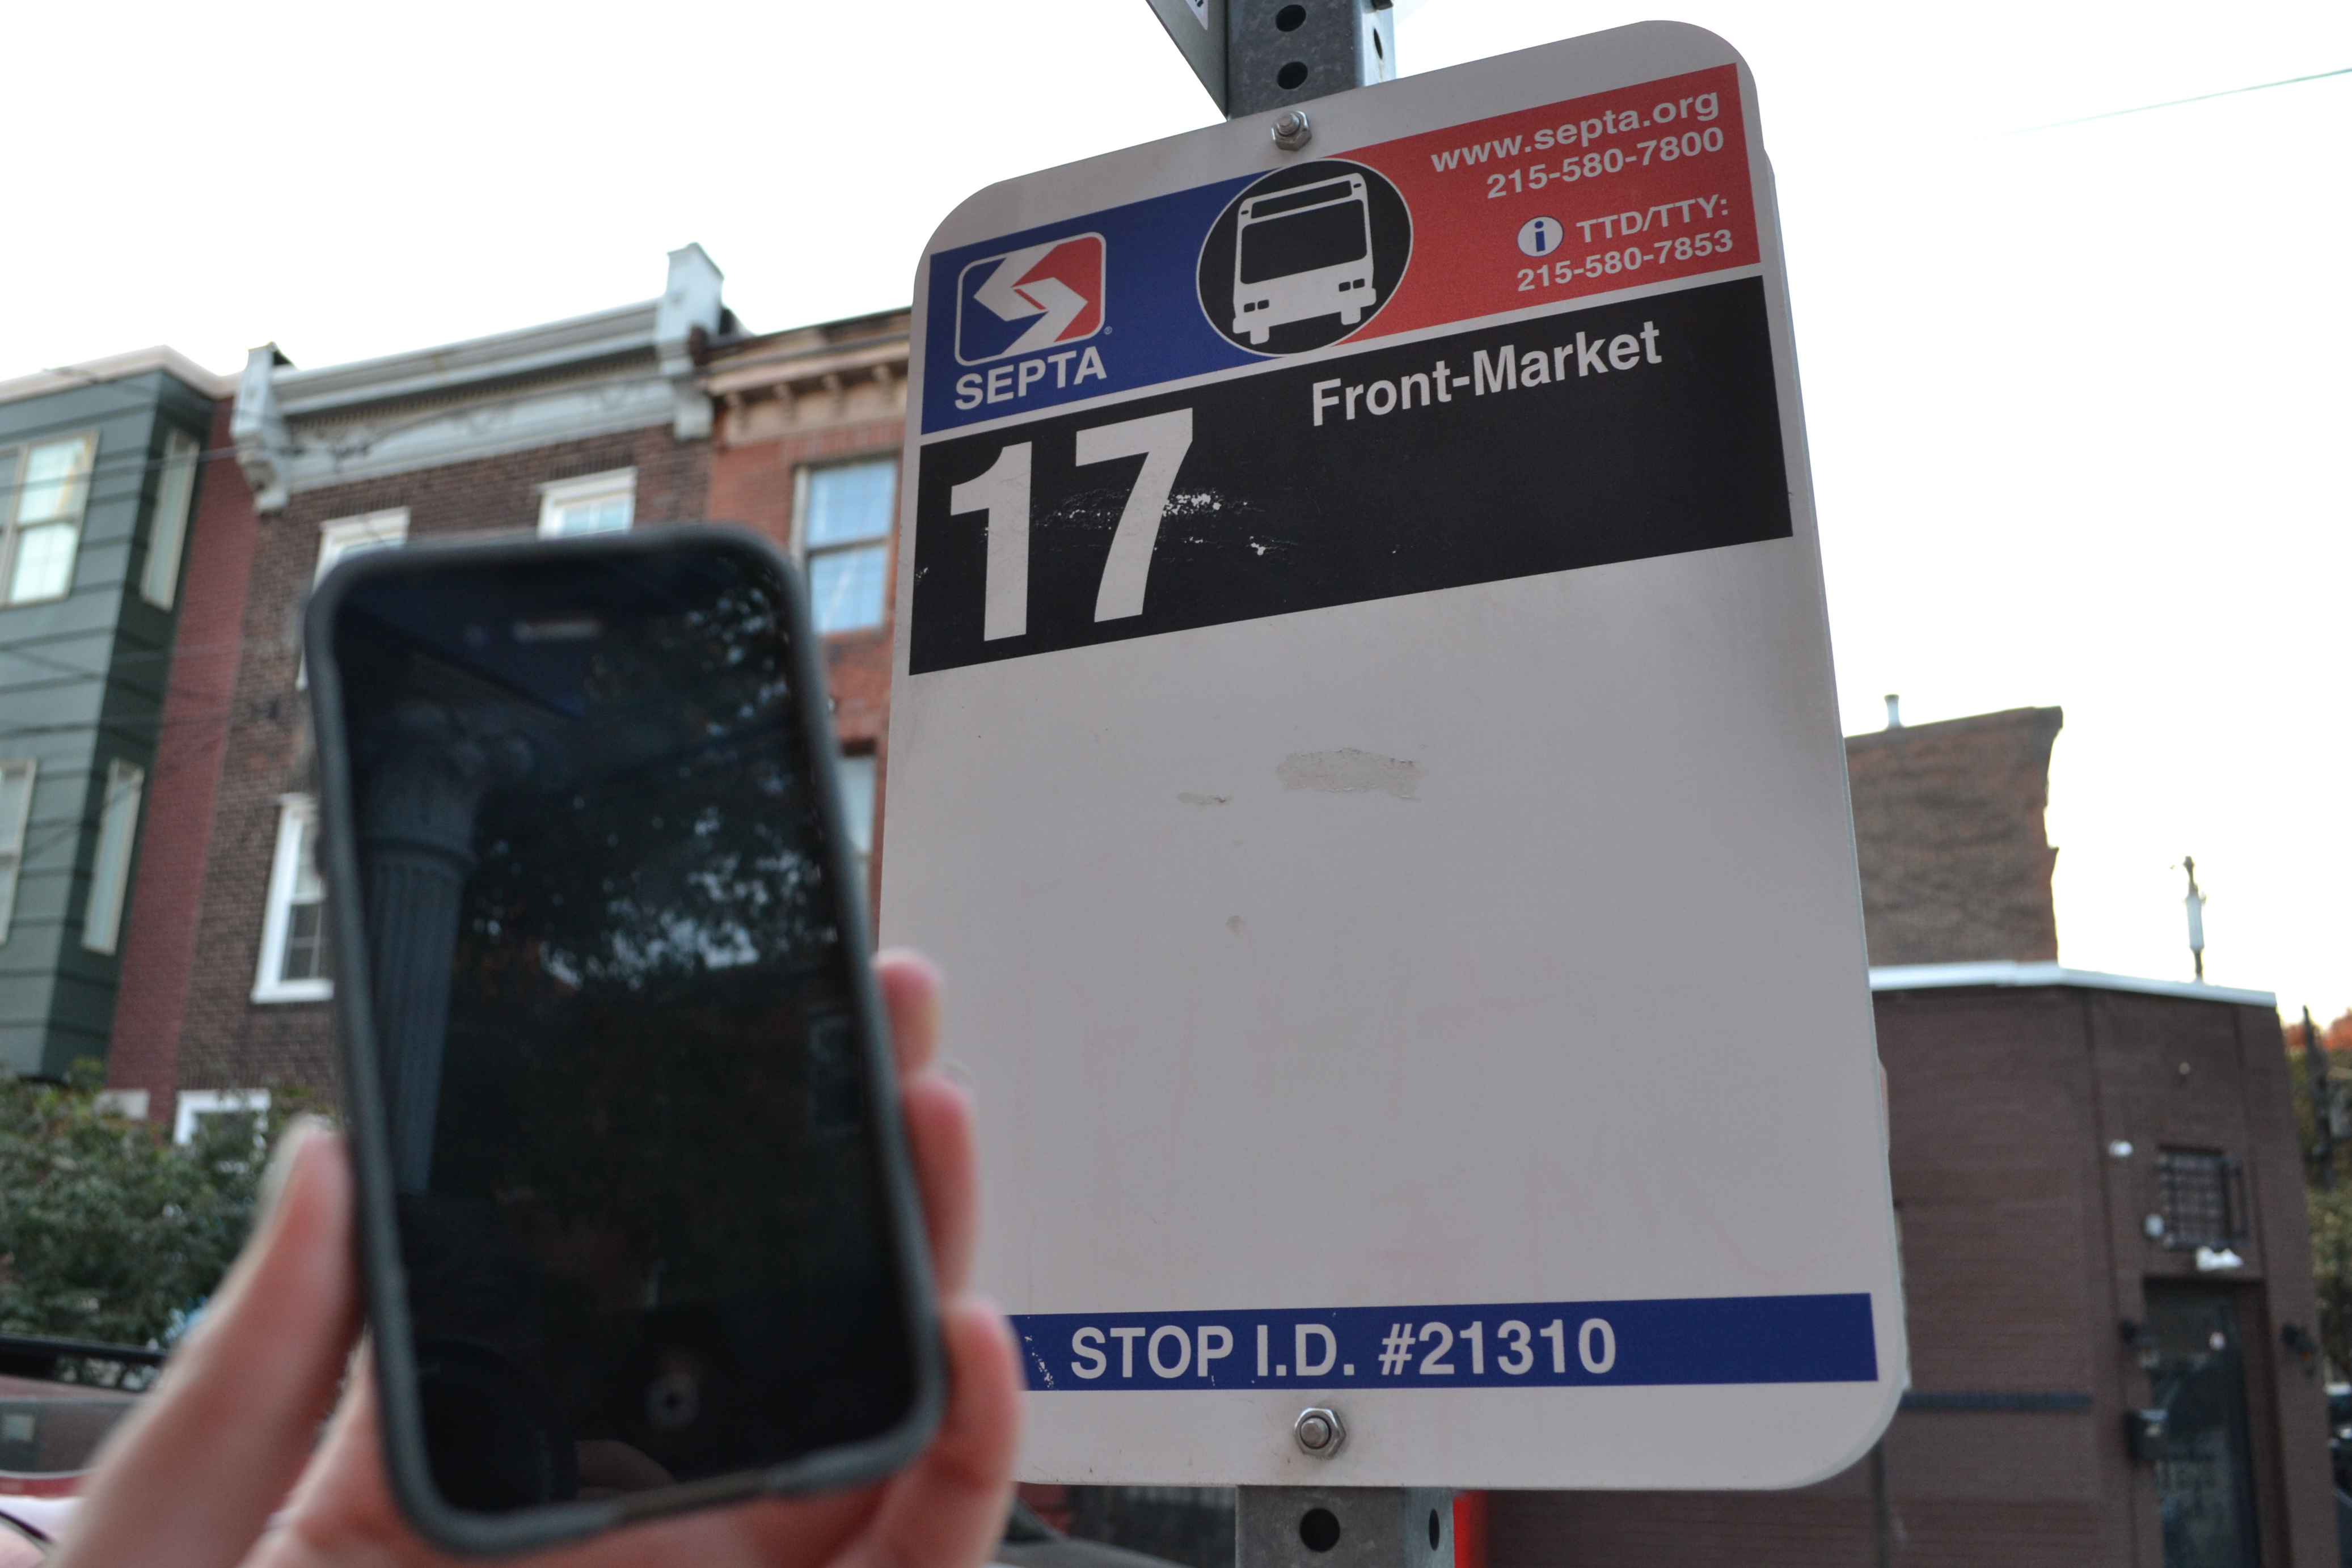 SEPTA launches official iPhone app